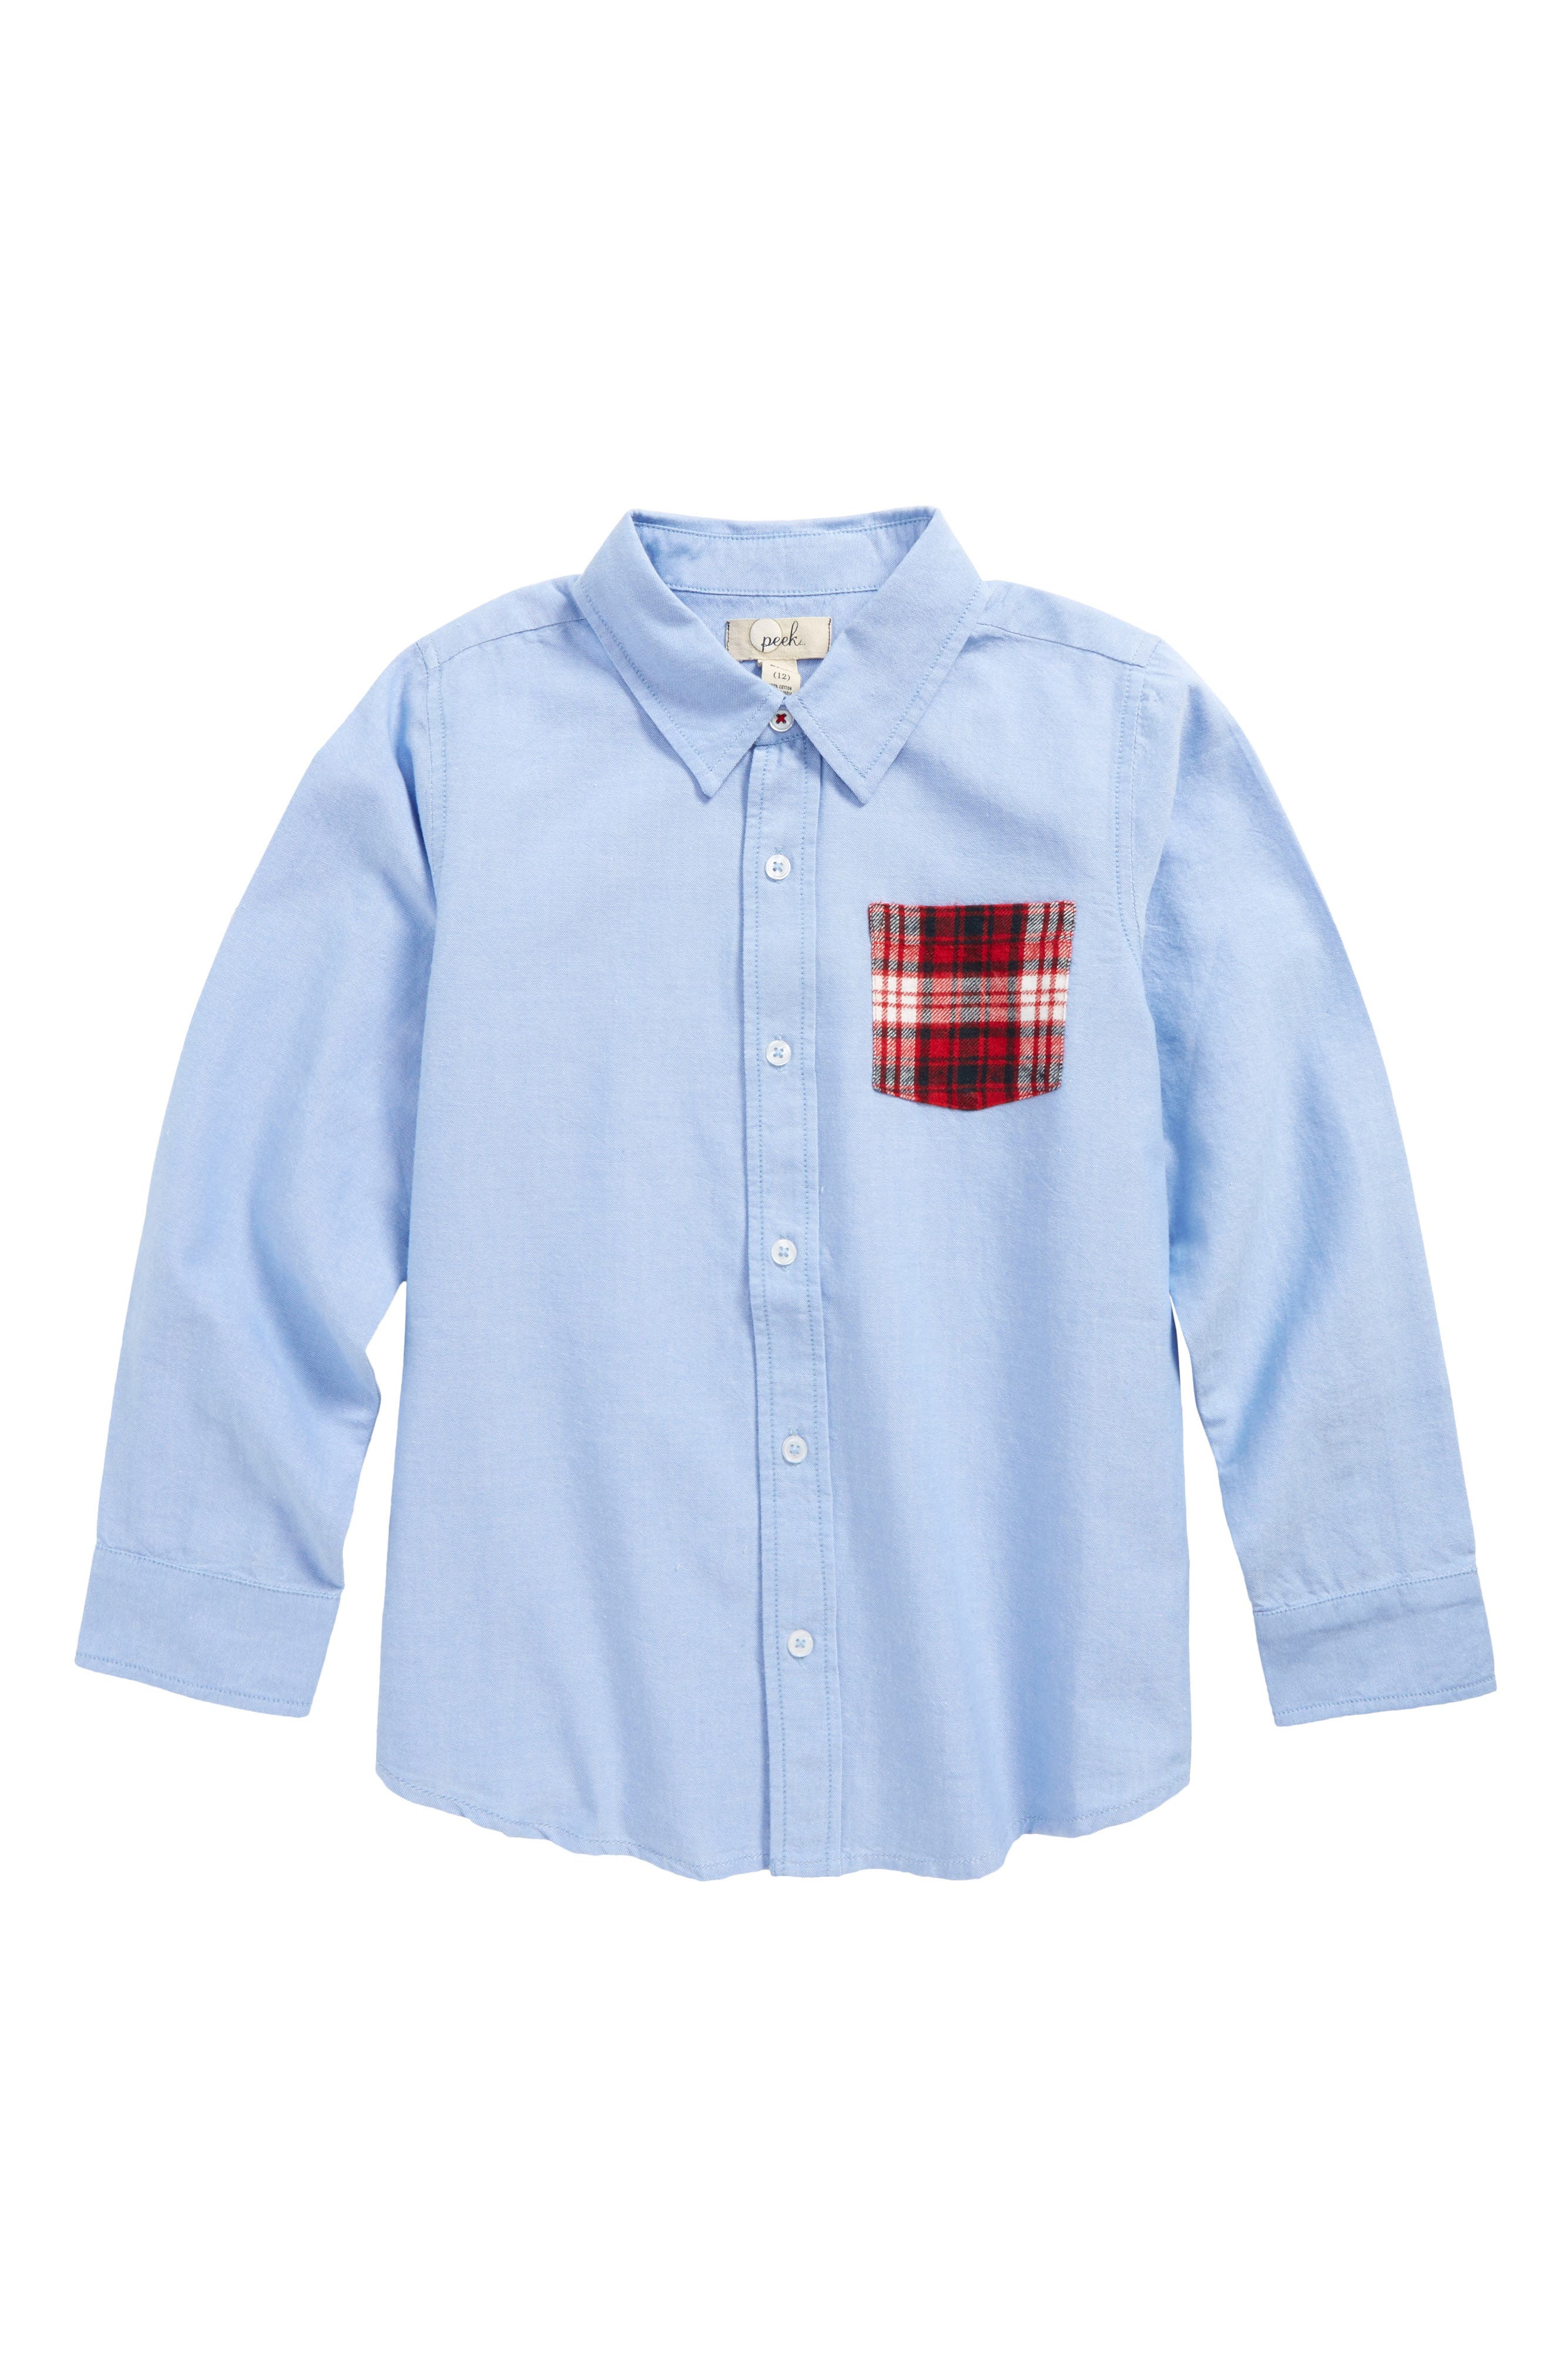 Johnny Oxford Shirt,                         Main,                         color, Blue